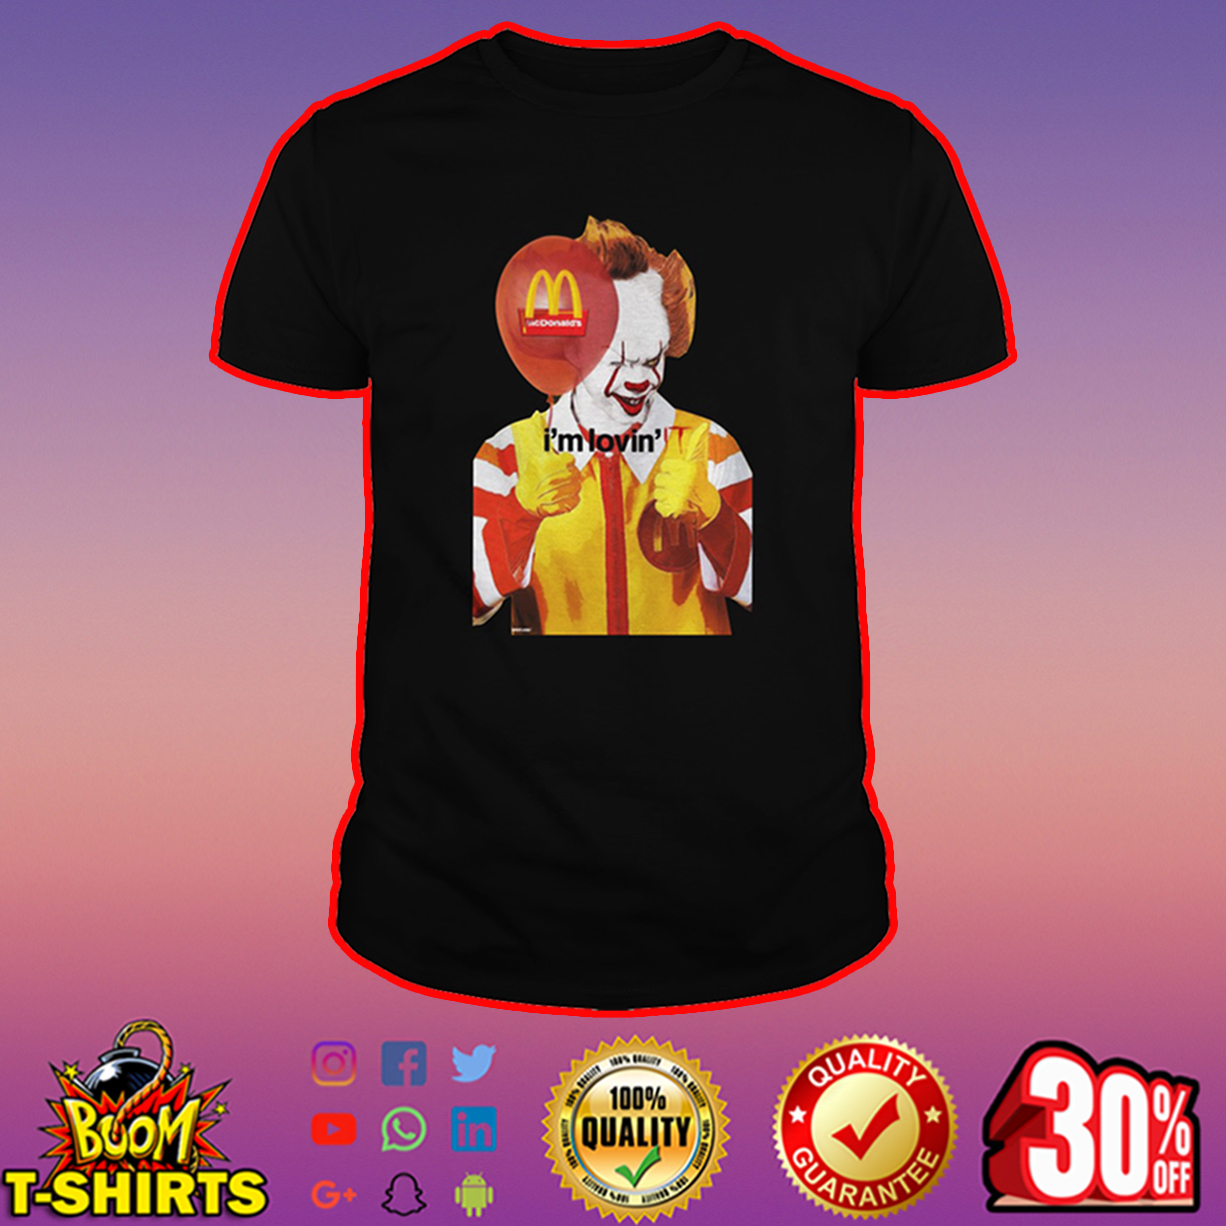 Mcdonald's I'm Lovin' IT shirt